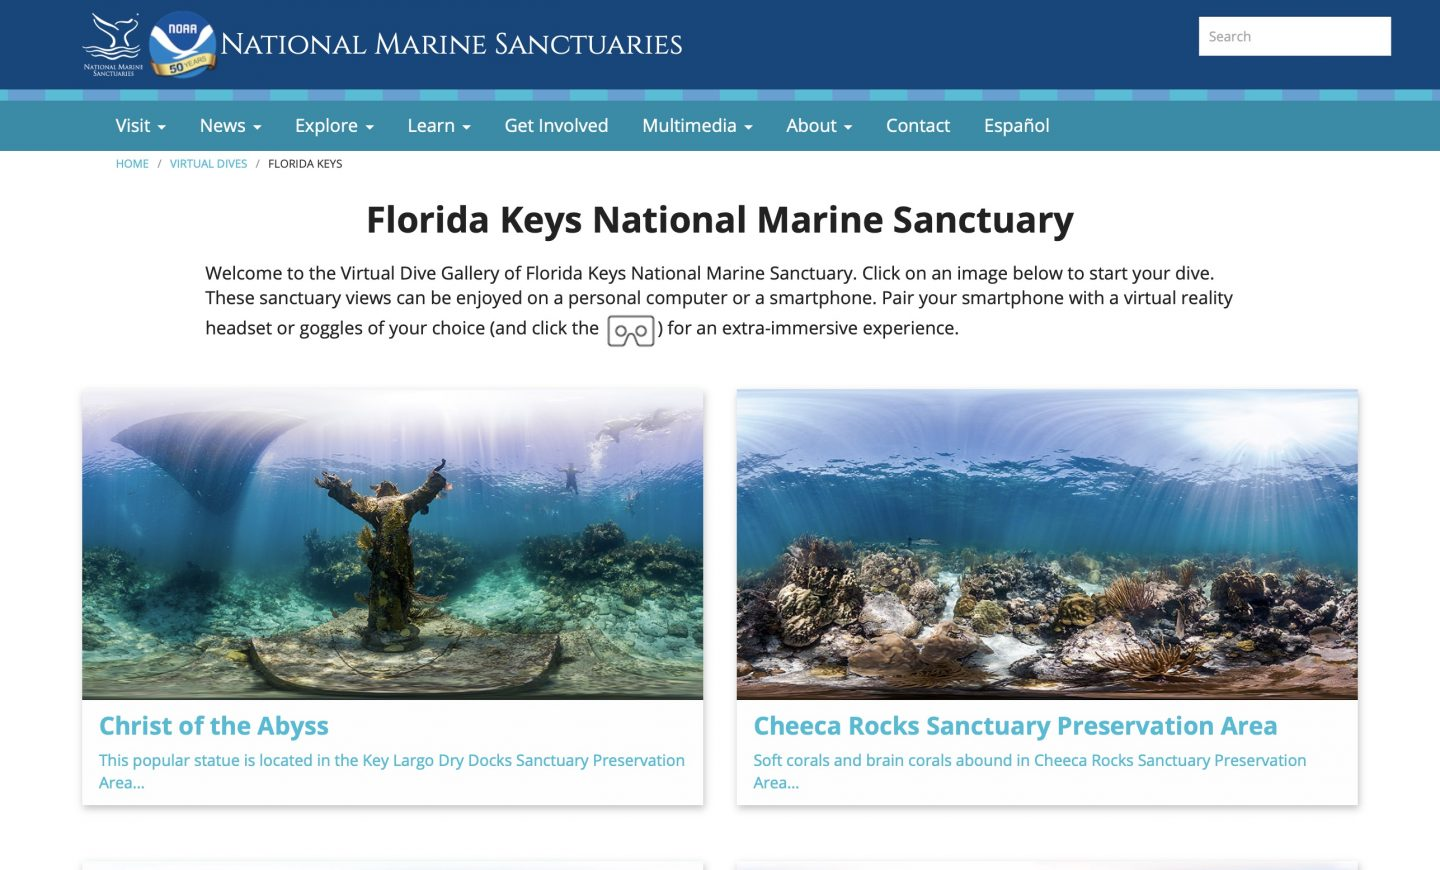 exploring outdoors from inside - Florida Keys National Marine Sancturary